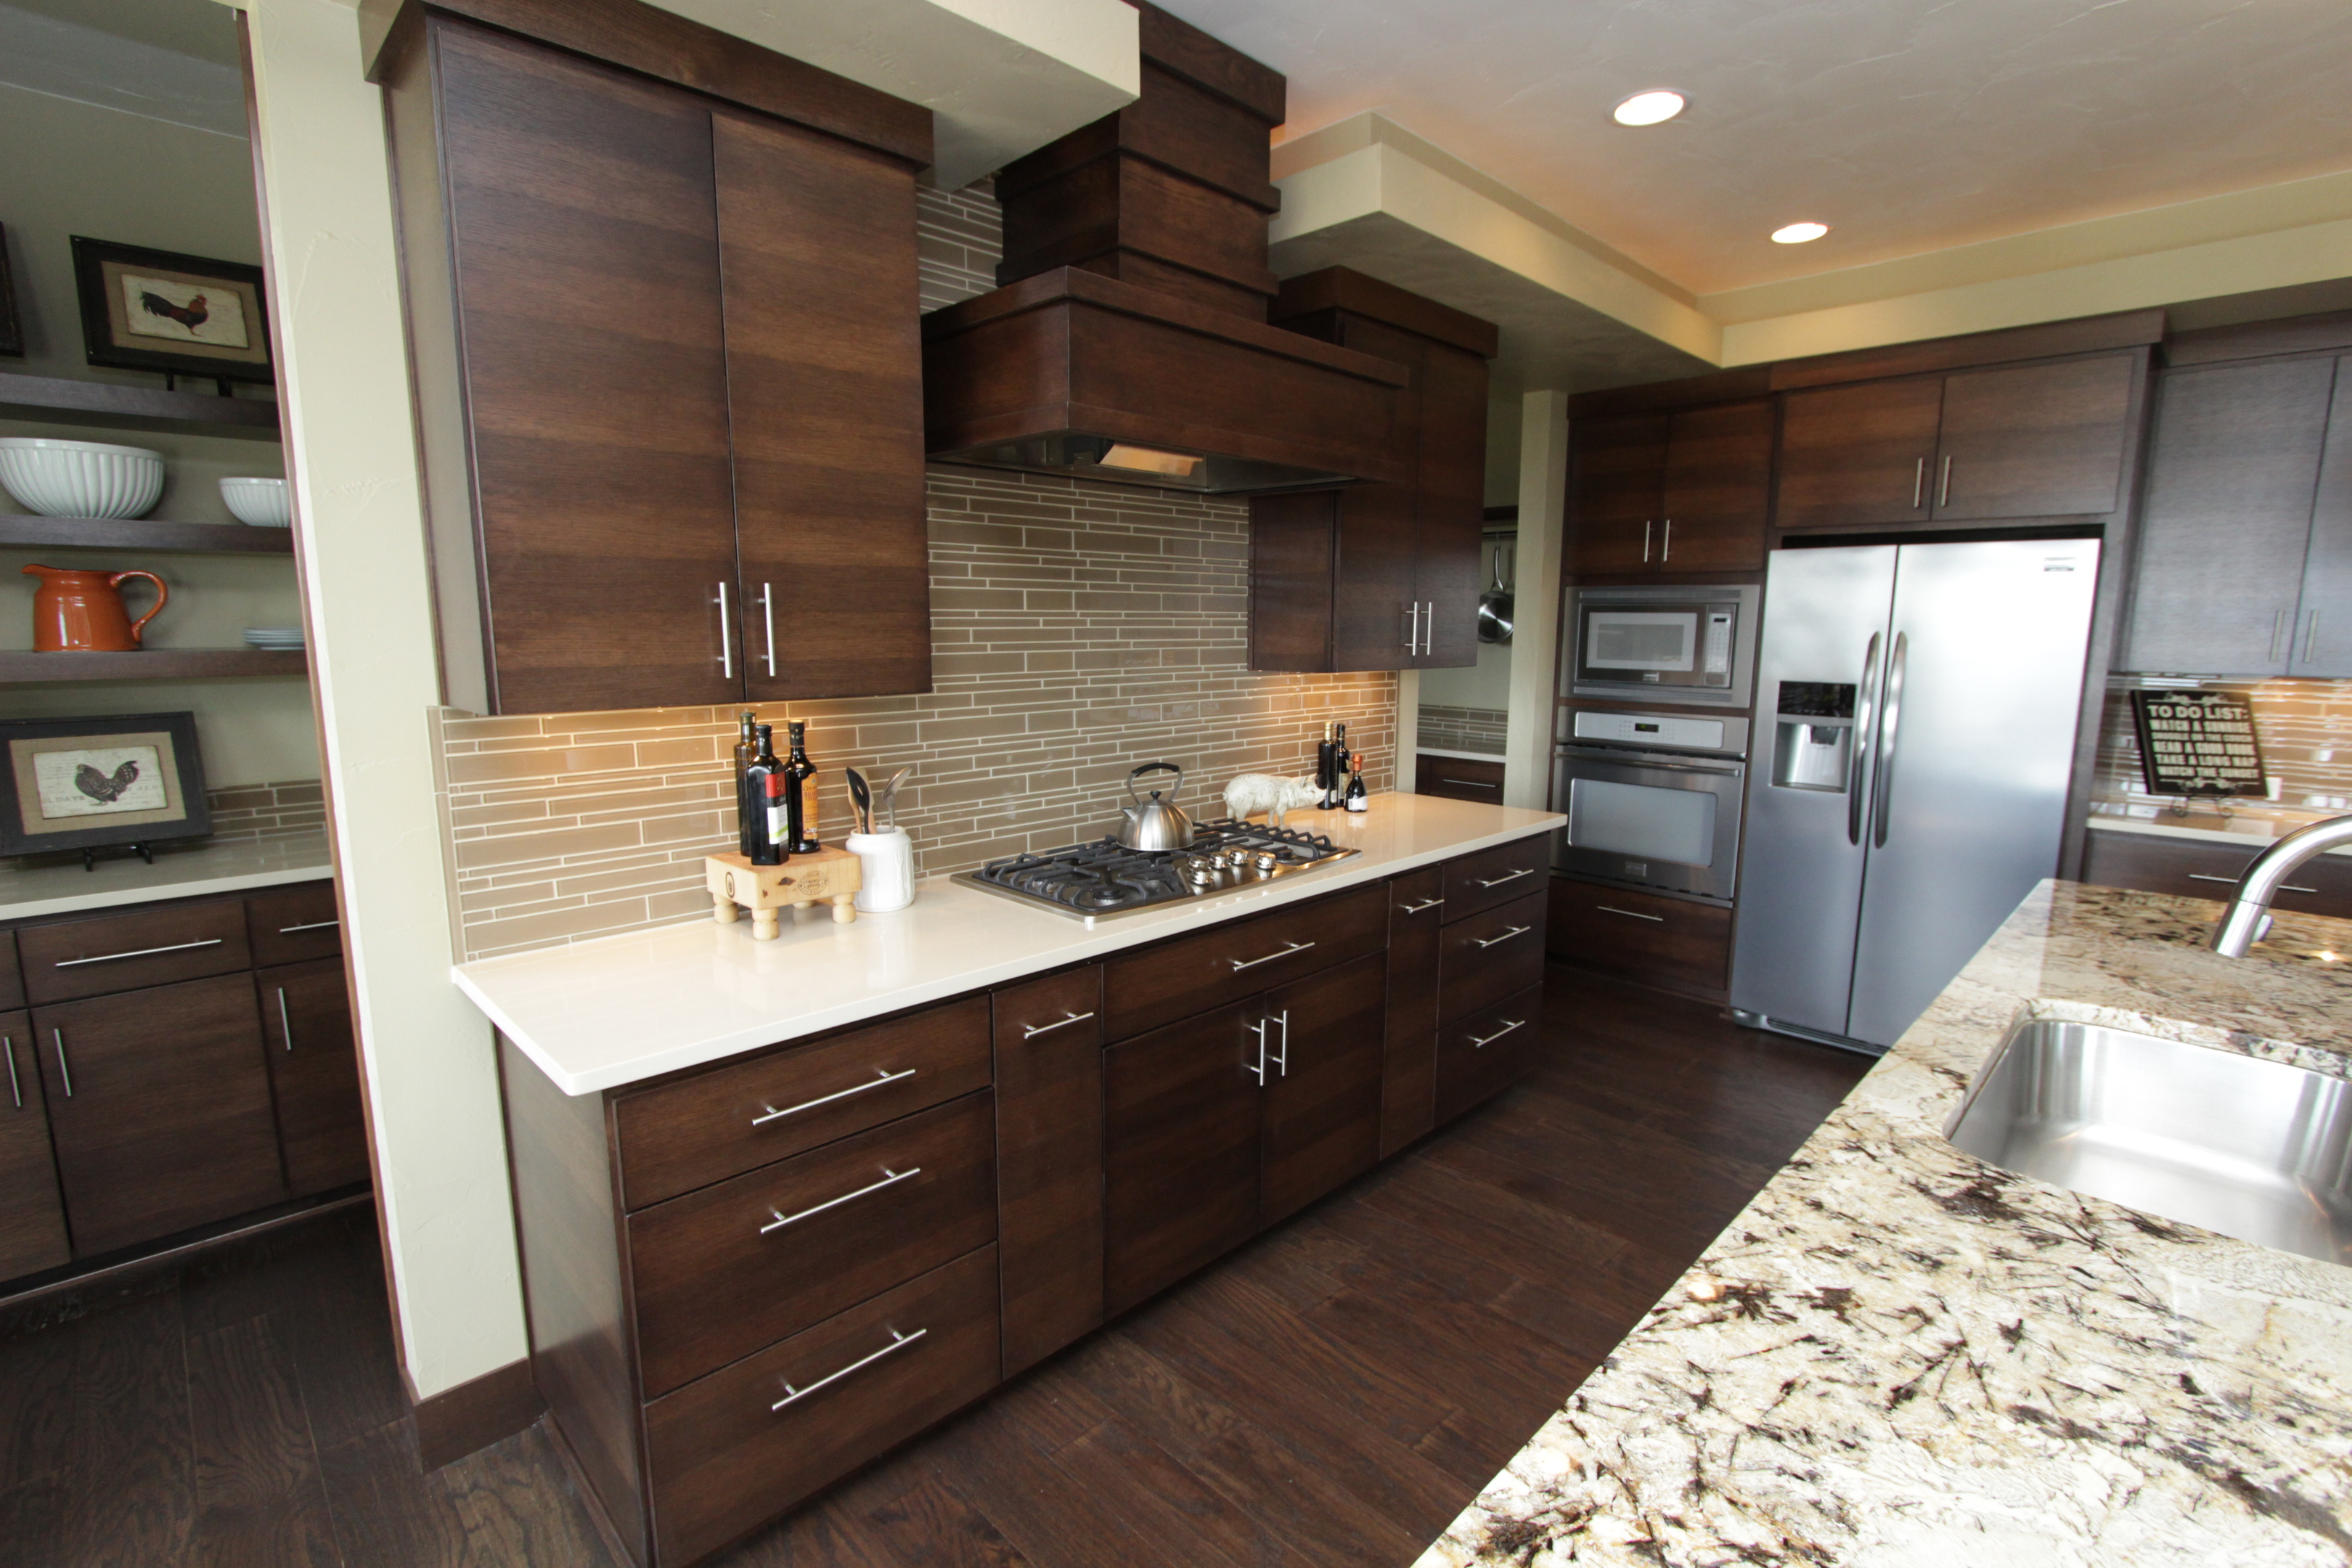 Thumb Kitchen Contemporary Style Quartersawn Walnut Banded Door Dark Color  Custom Wood Hood Butler Pantry Floating